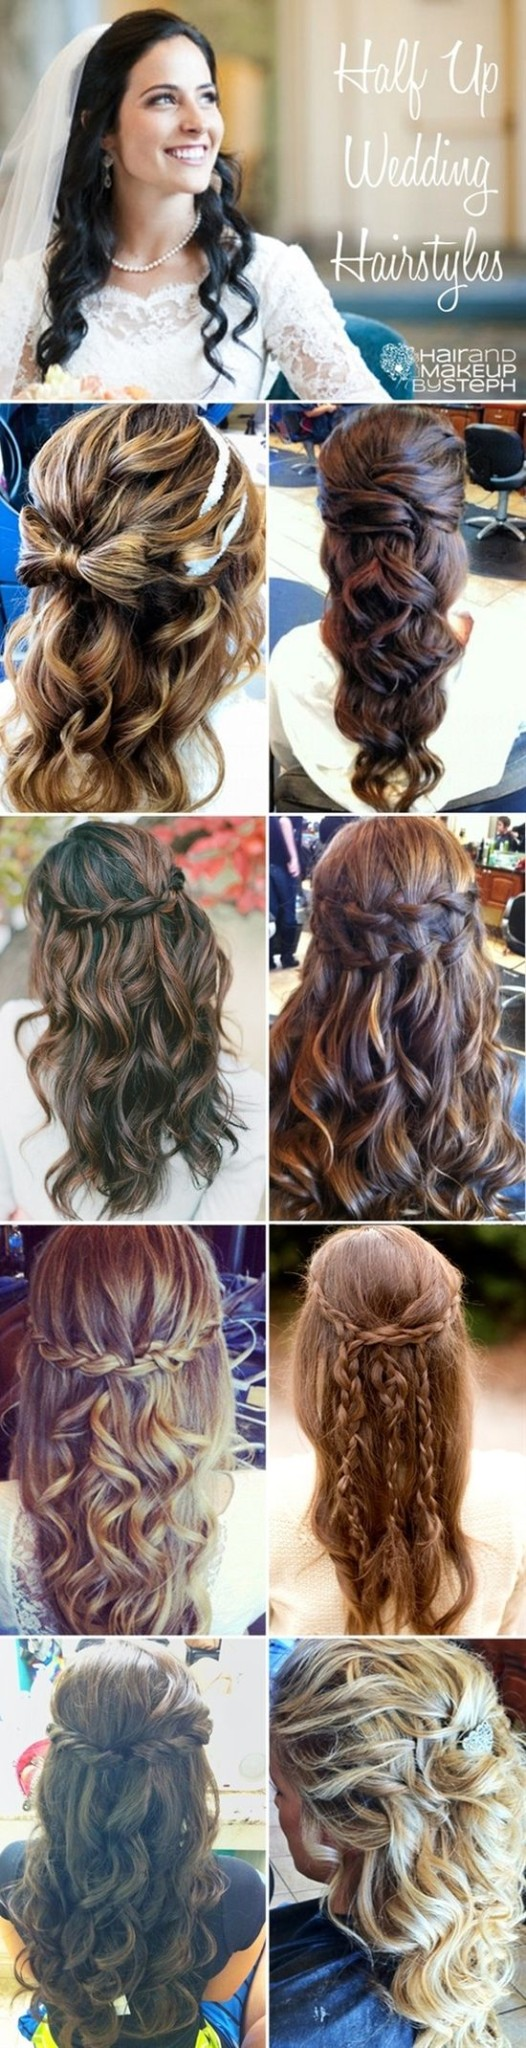 Half Up Half Down Wedding Hairstyles popular 2015